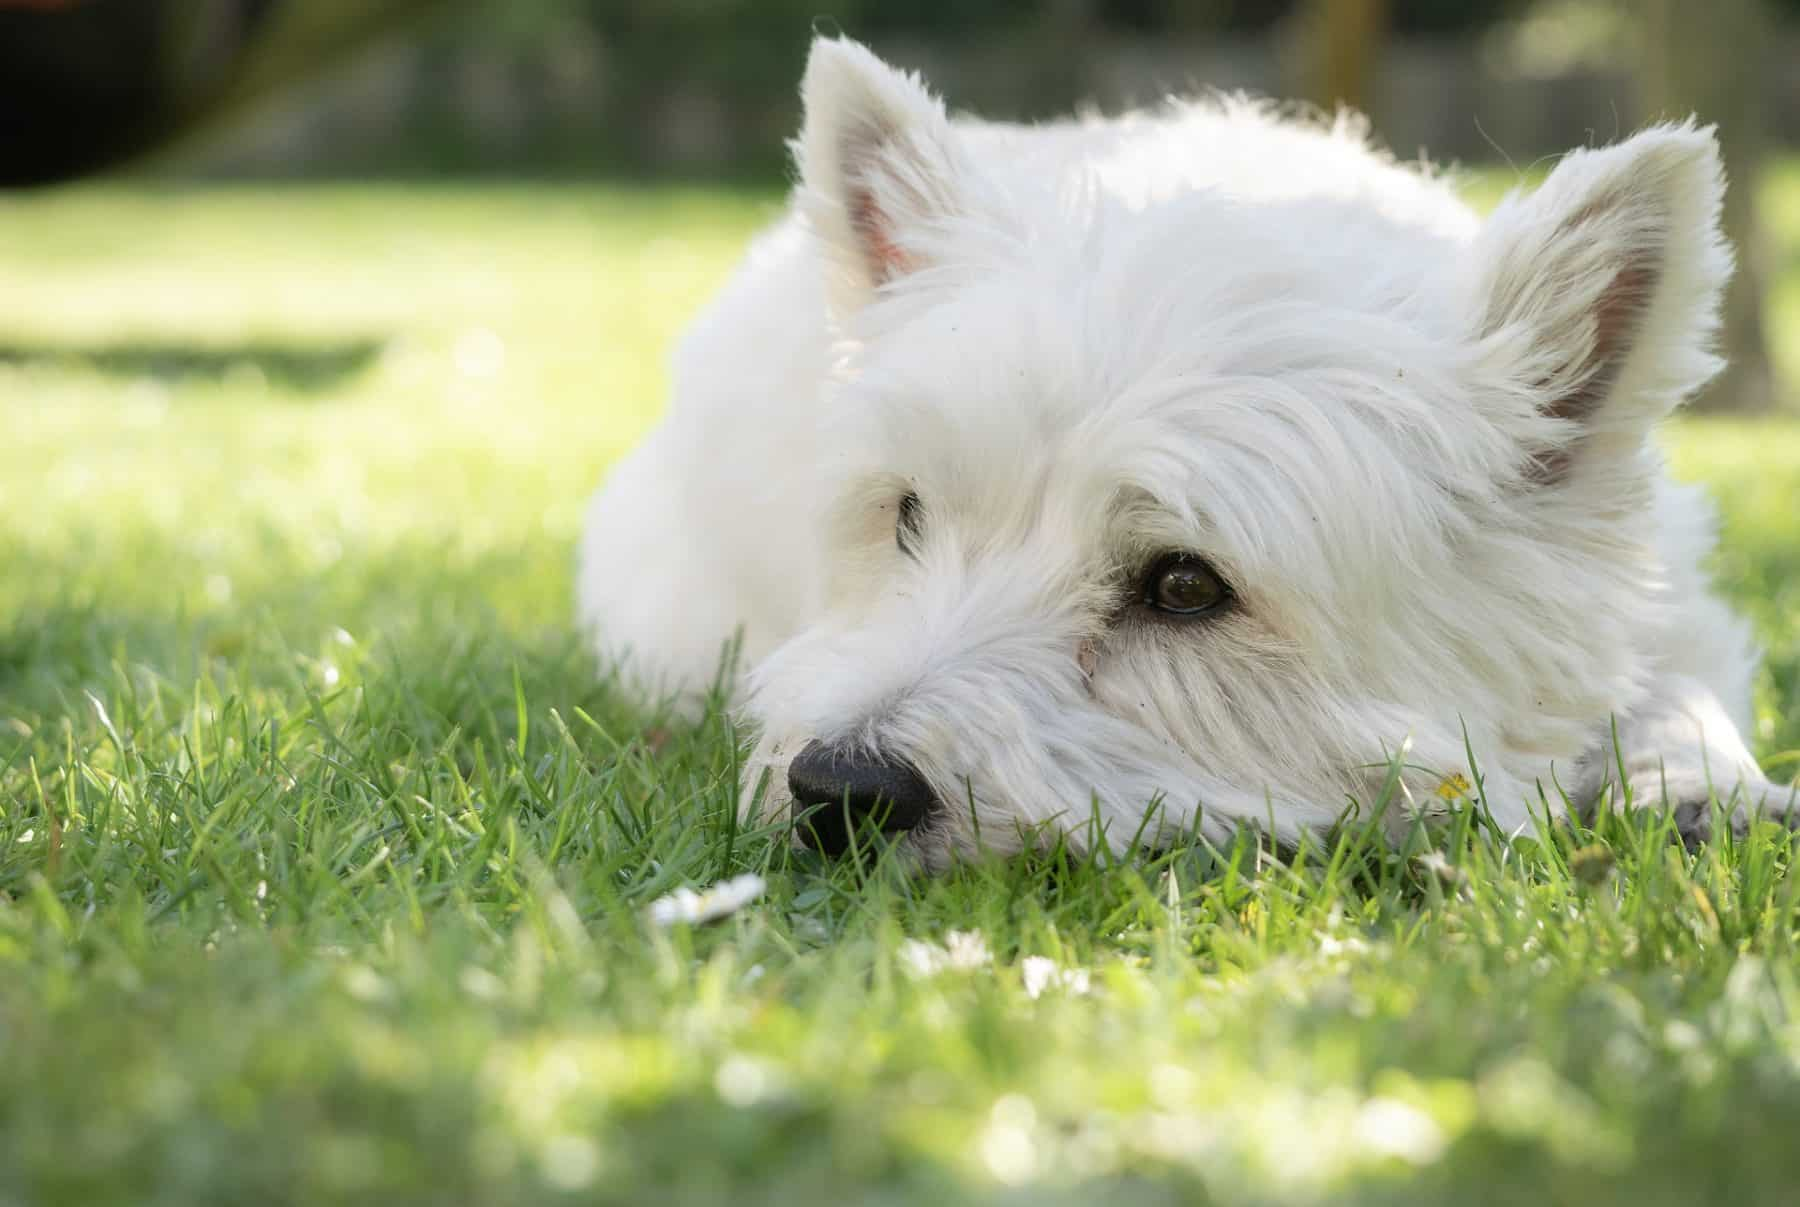 Rover Com Reviews >> Top 4 Westie Haircut Styles for 2019 | The Dog People by Rover.com